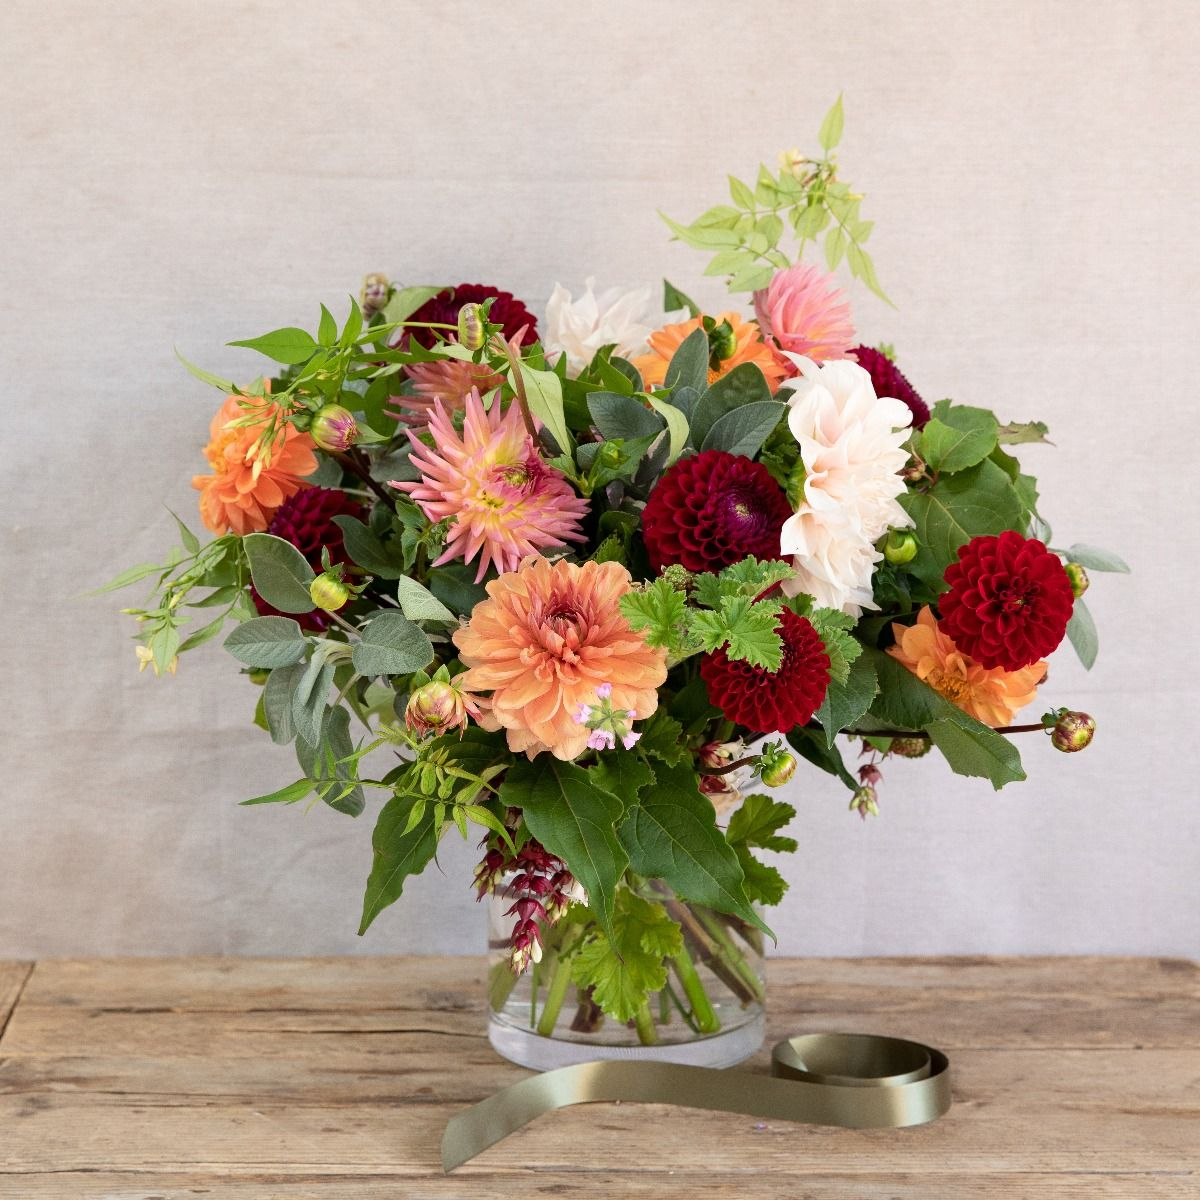 dahlia and herb bouquet